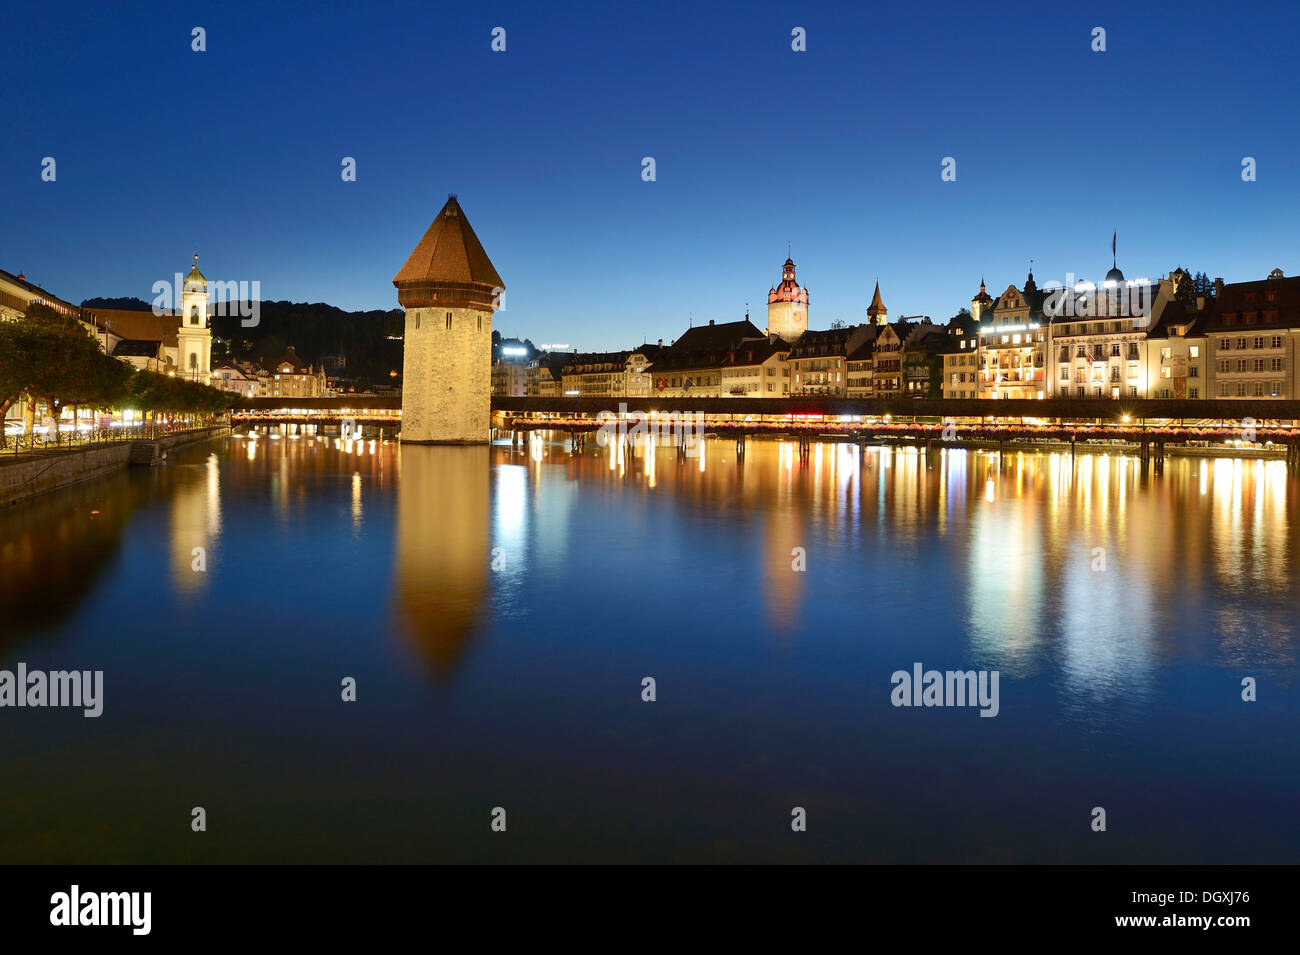 The lights of Chapel Bridge and the water tower are reflected in the water of the Reuss river, Lucerne, Switzerland, Europe - Stock Image